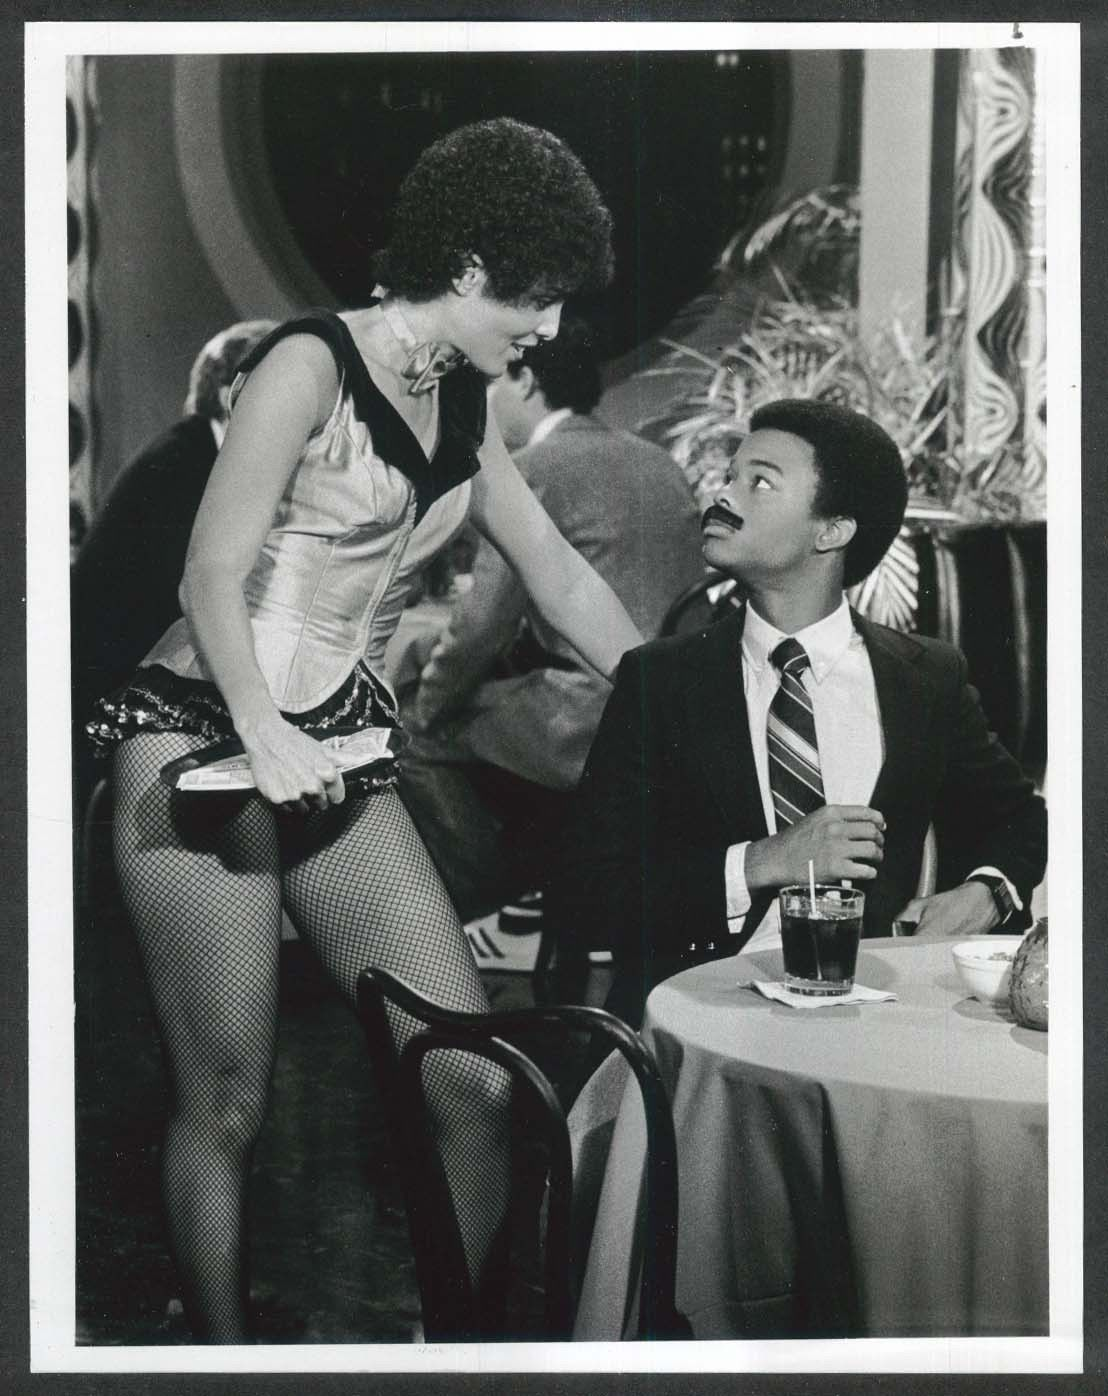 Shari_Belafonte_Harper_Todd_Bridges_Diff_rent_Strokes_NBC-TV_8x10_photo_1982